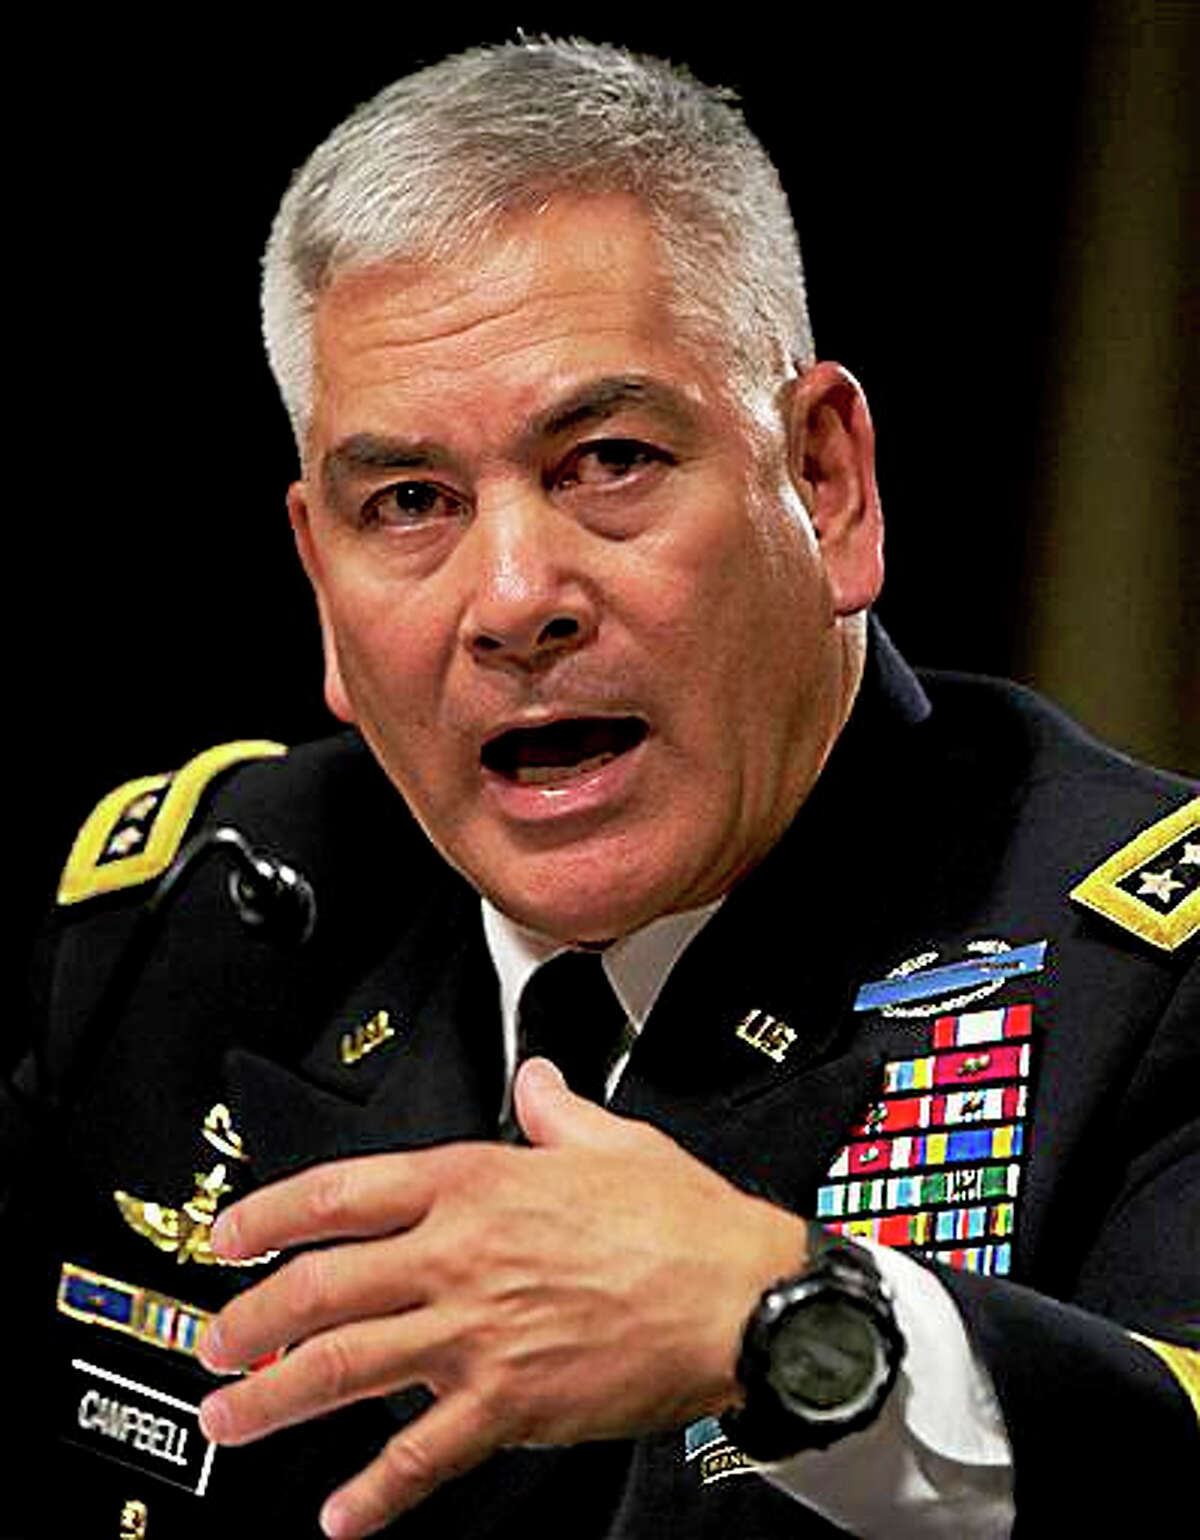 """U.S. Forces-Afghanistan Resolute Support Mission Commander Gen. John Campbell testifies on Capitol Hill in Washington, Tuesday, Oct. 6, 2015, before the Senate Armed Services Committee hearing on the Situation in Afghanistan. U.S. forces attacked a hospital in northern Afghanistan last weekend, killing at least 22 people, despite """"rigorous"""" U.S. military procedures designed to avoid such mistakes, the top commander of U.S. and allied forces in Afghanistan said Tuesday."""